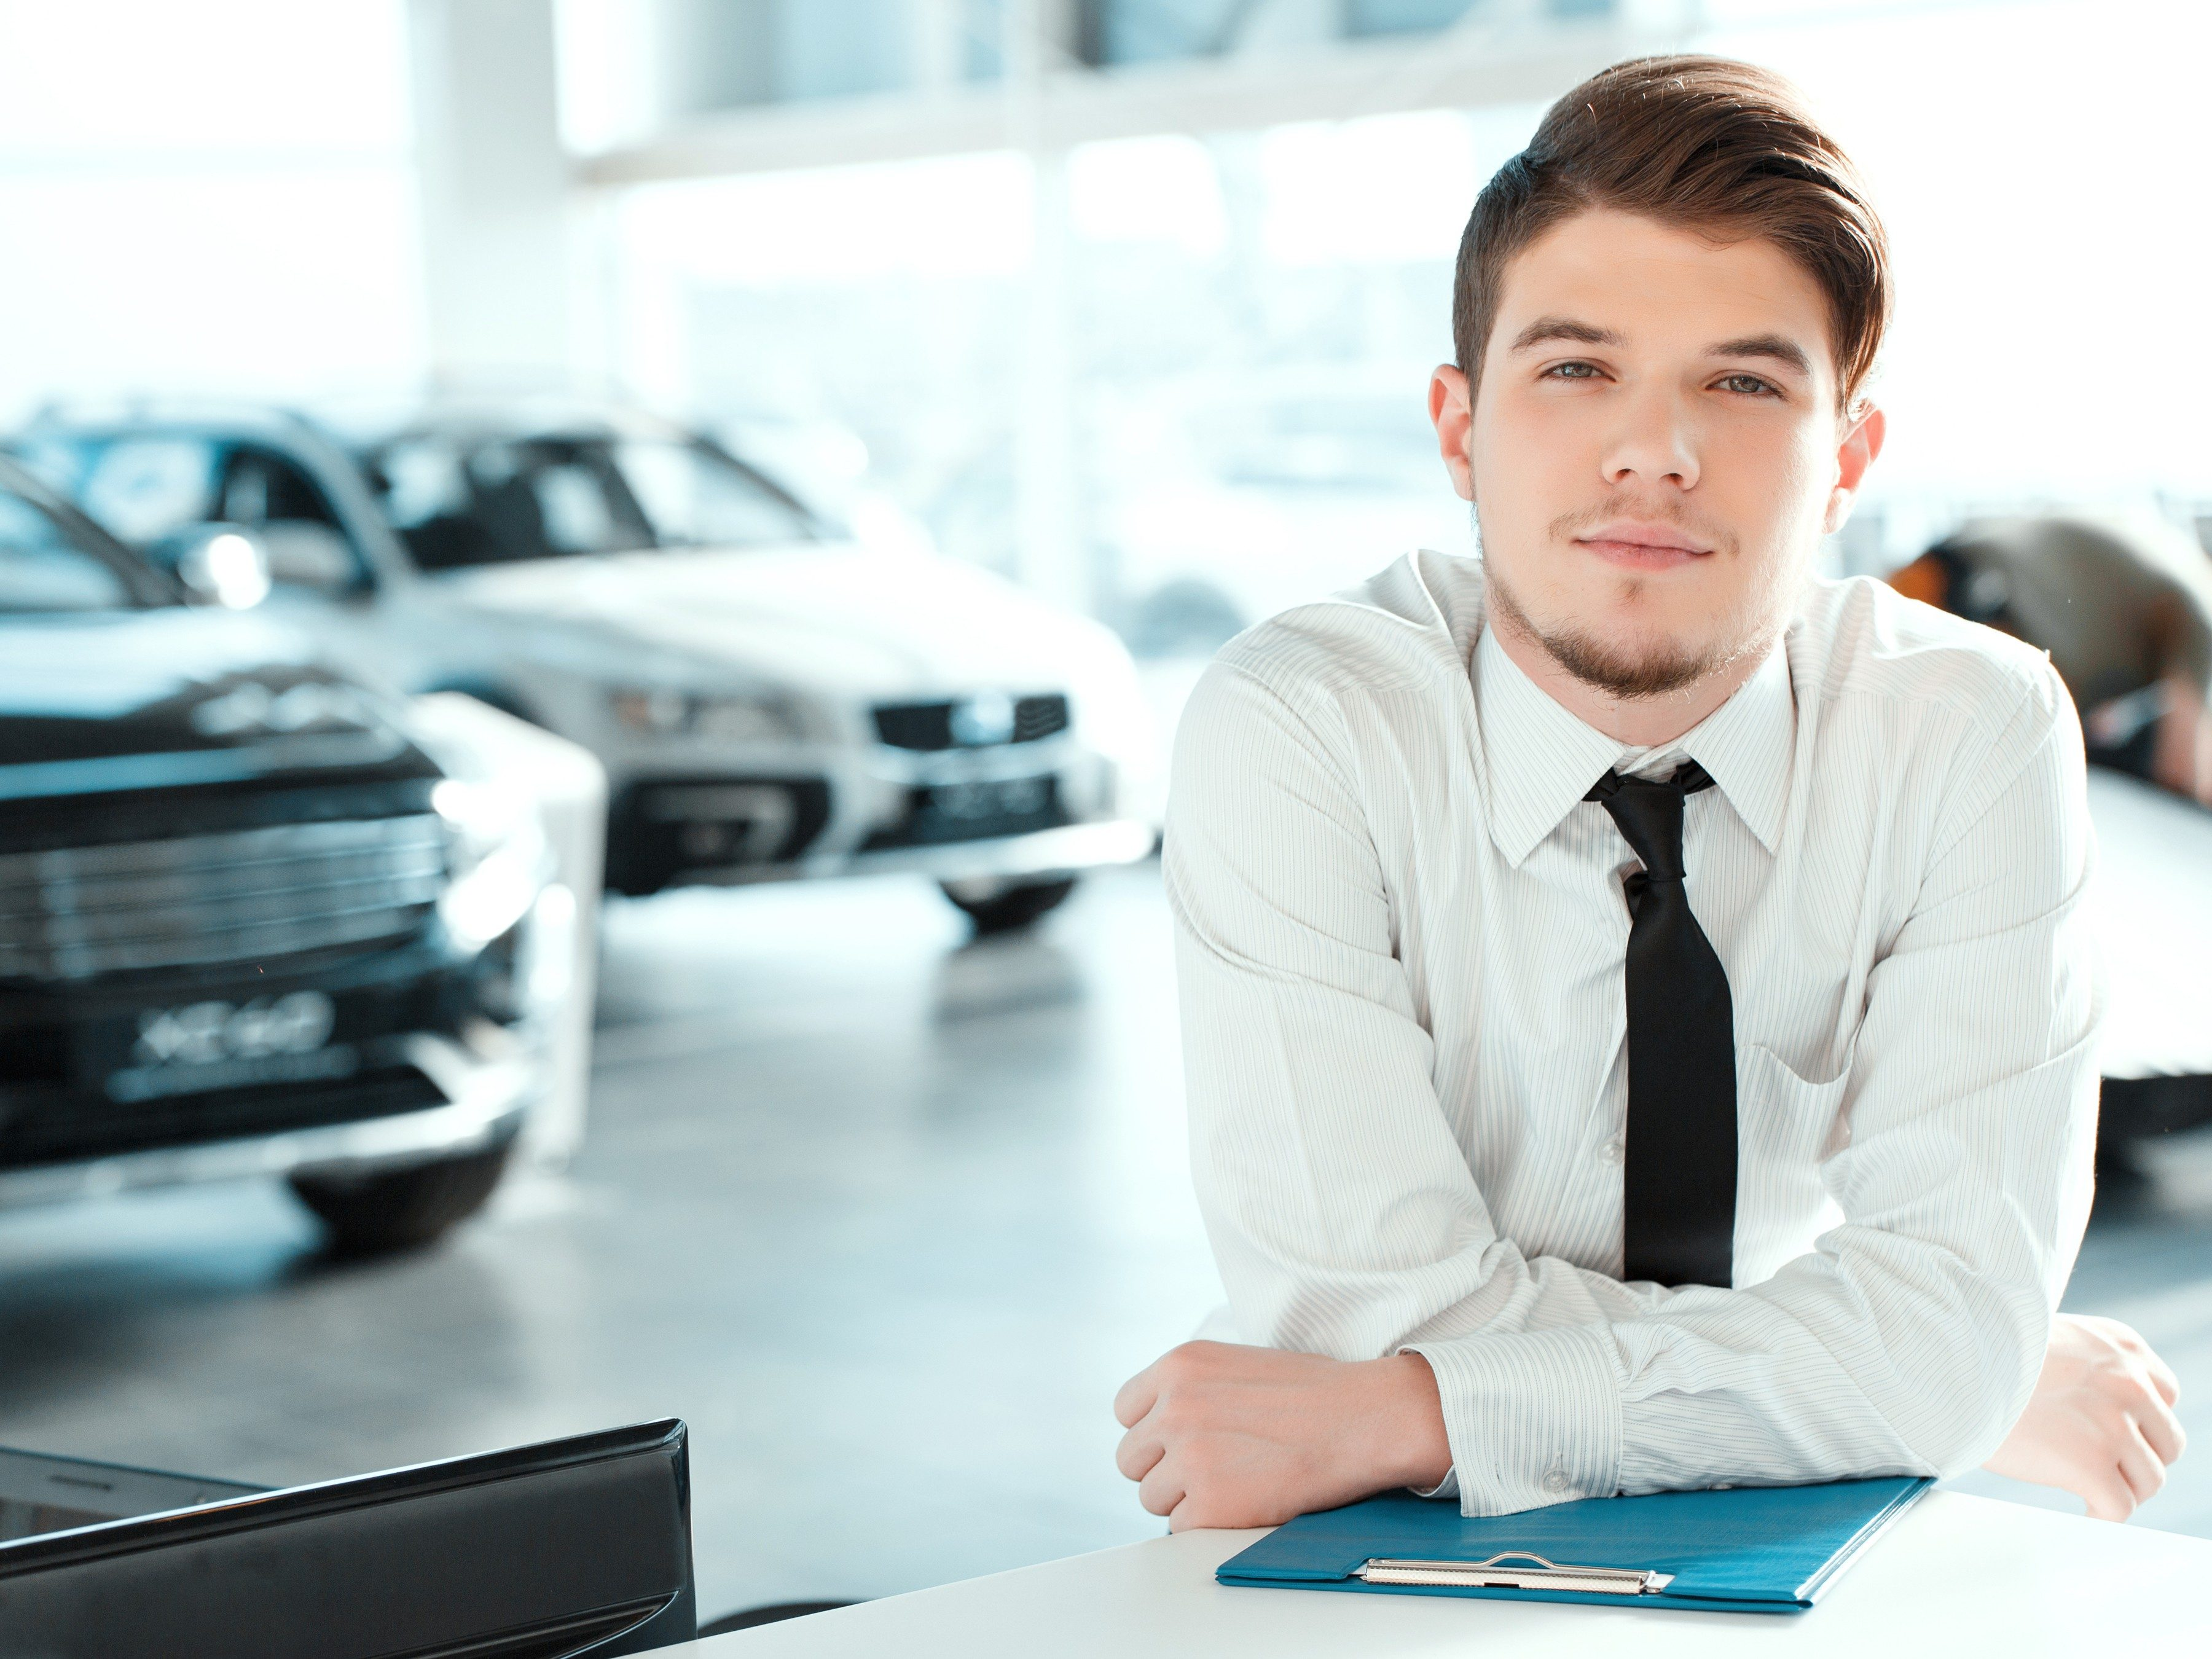 12. Attractive People Sell More Cars